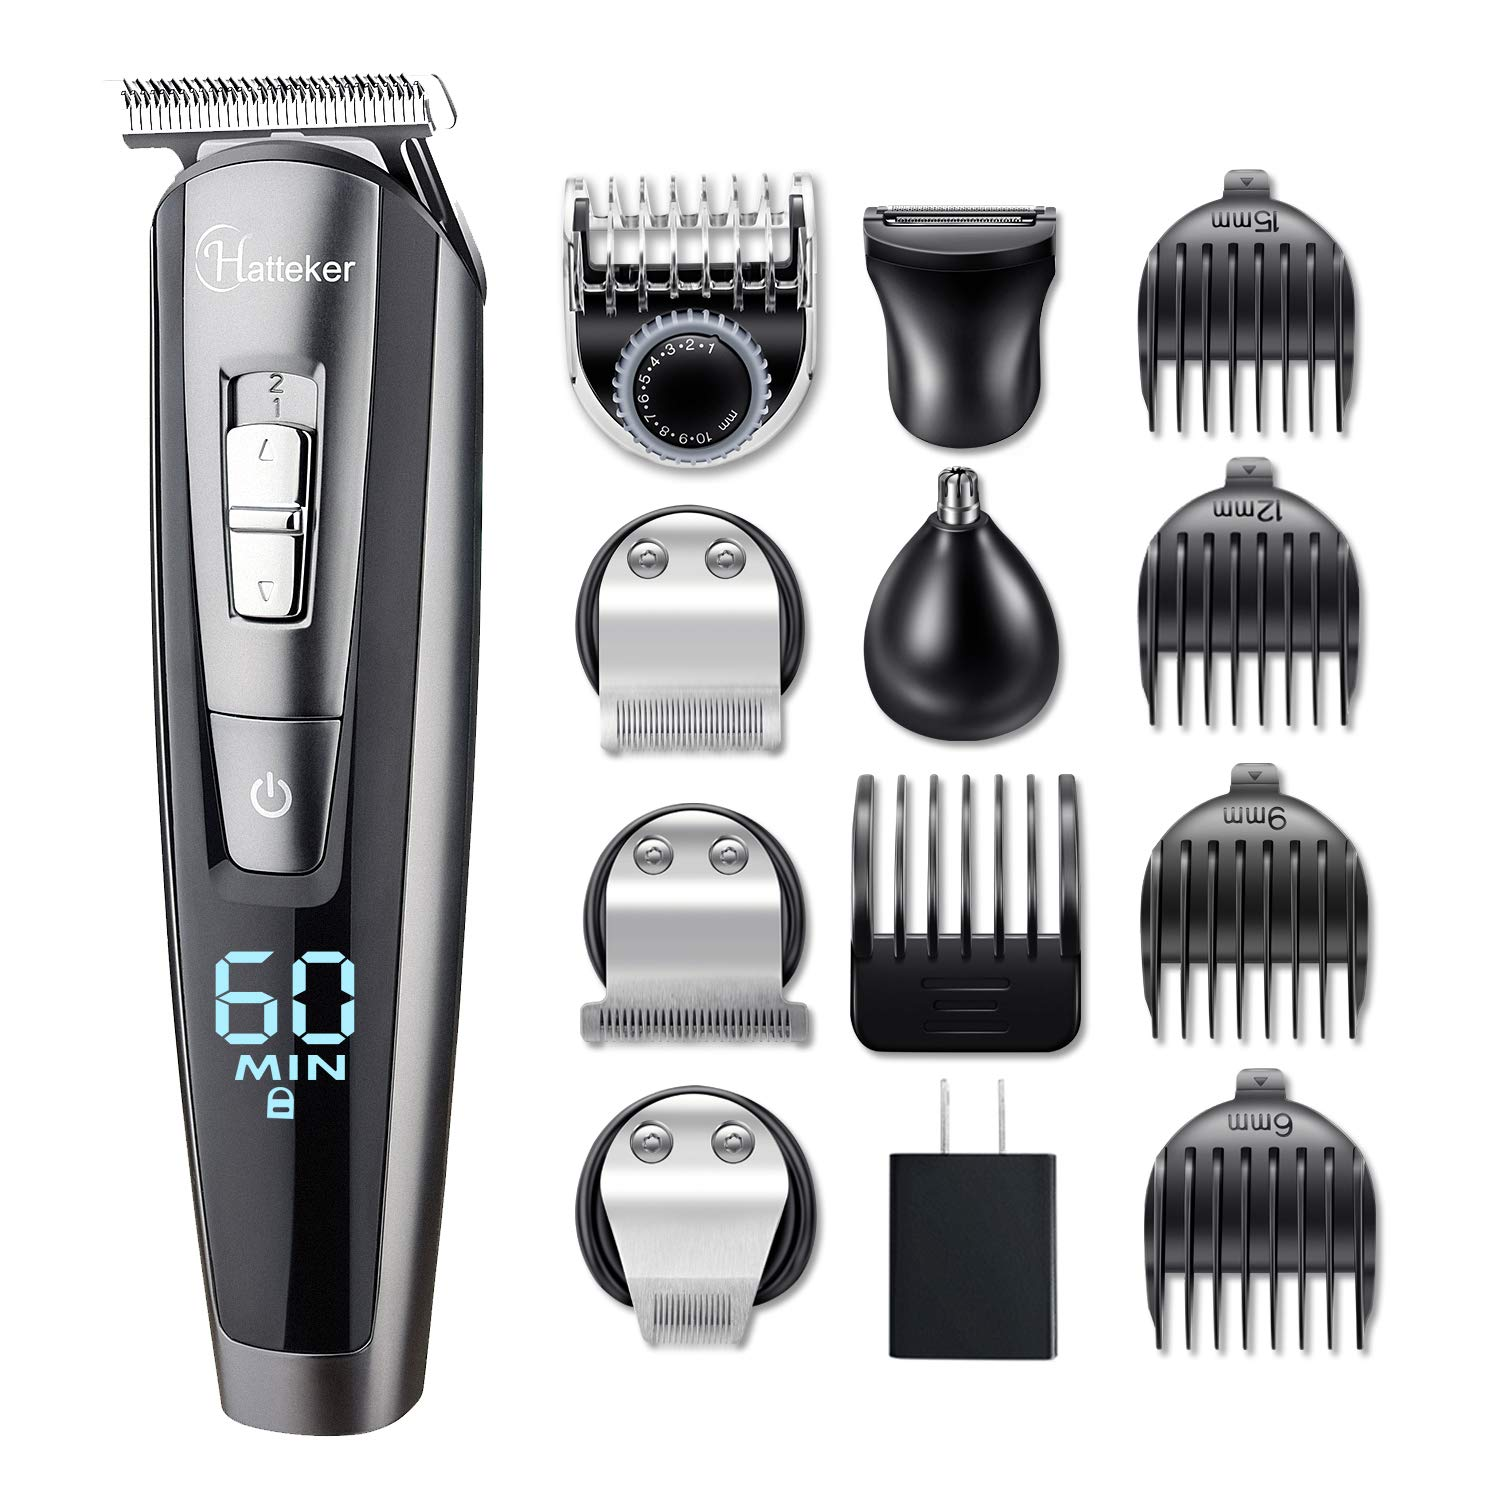 Does A Trimmer Give A Clean Shave?